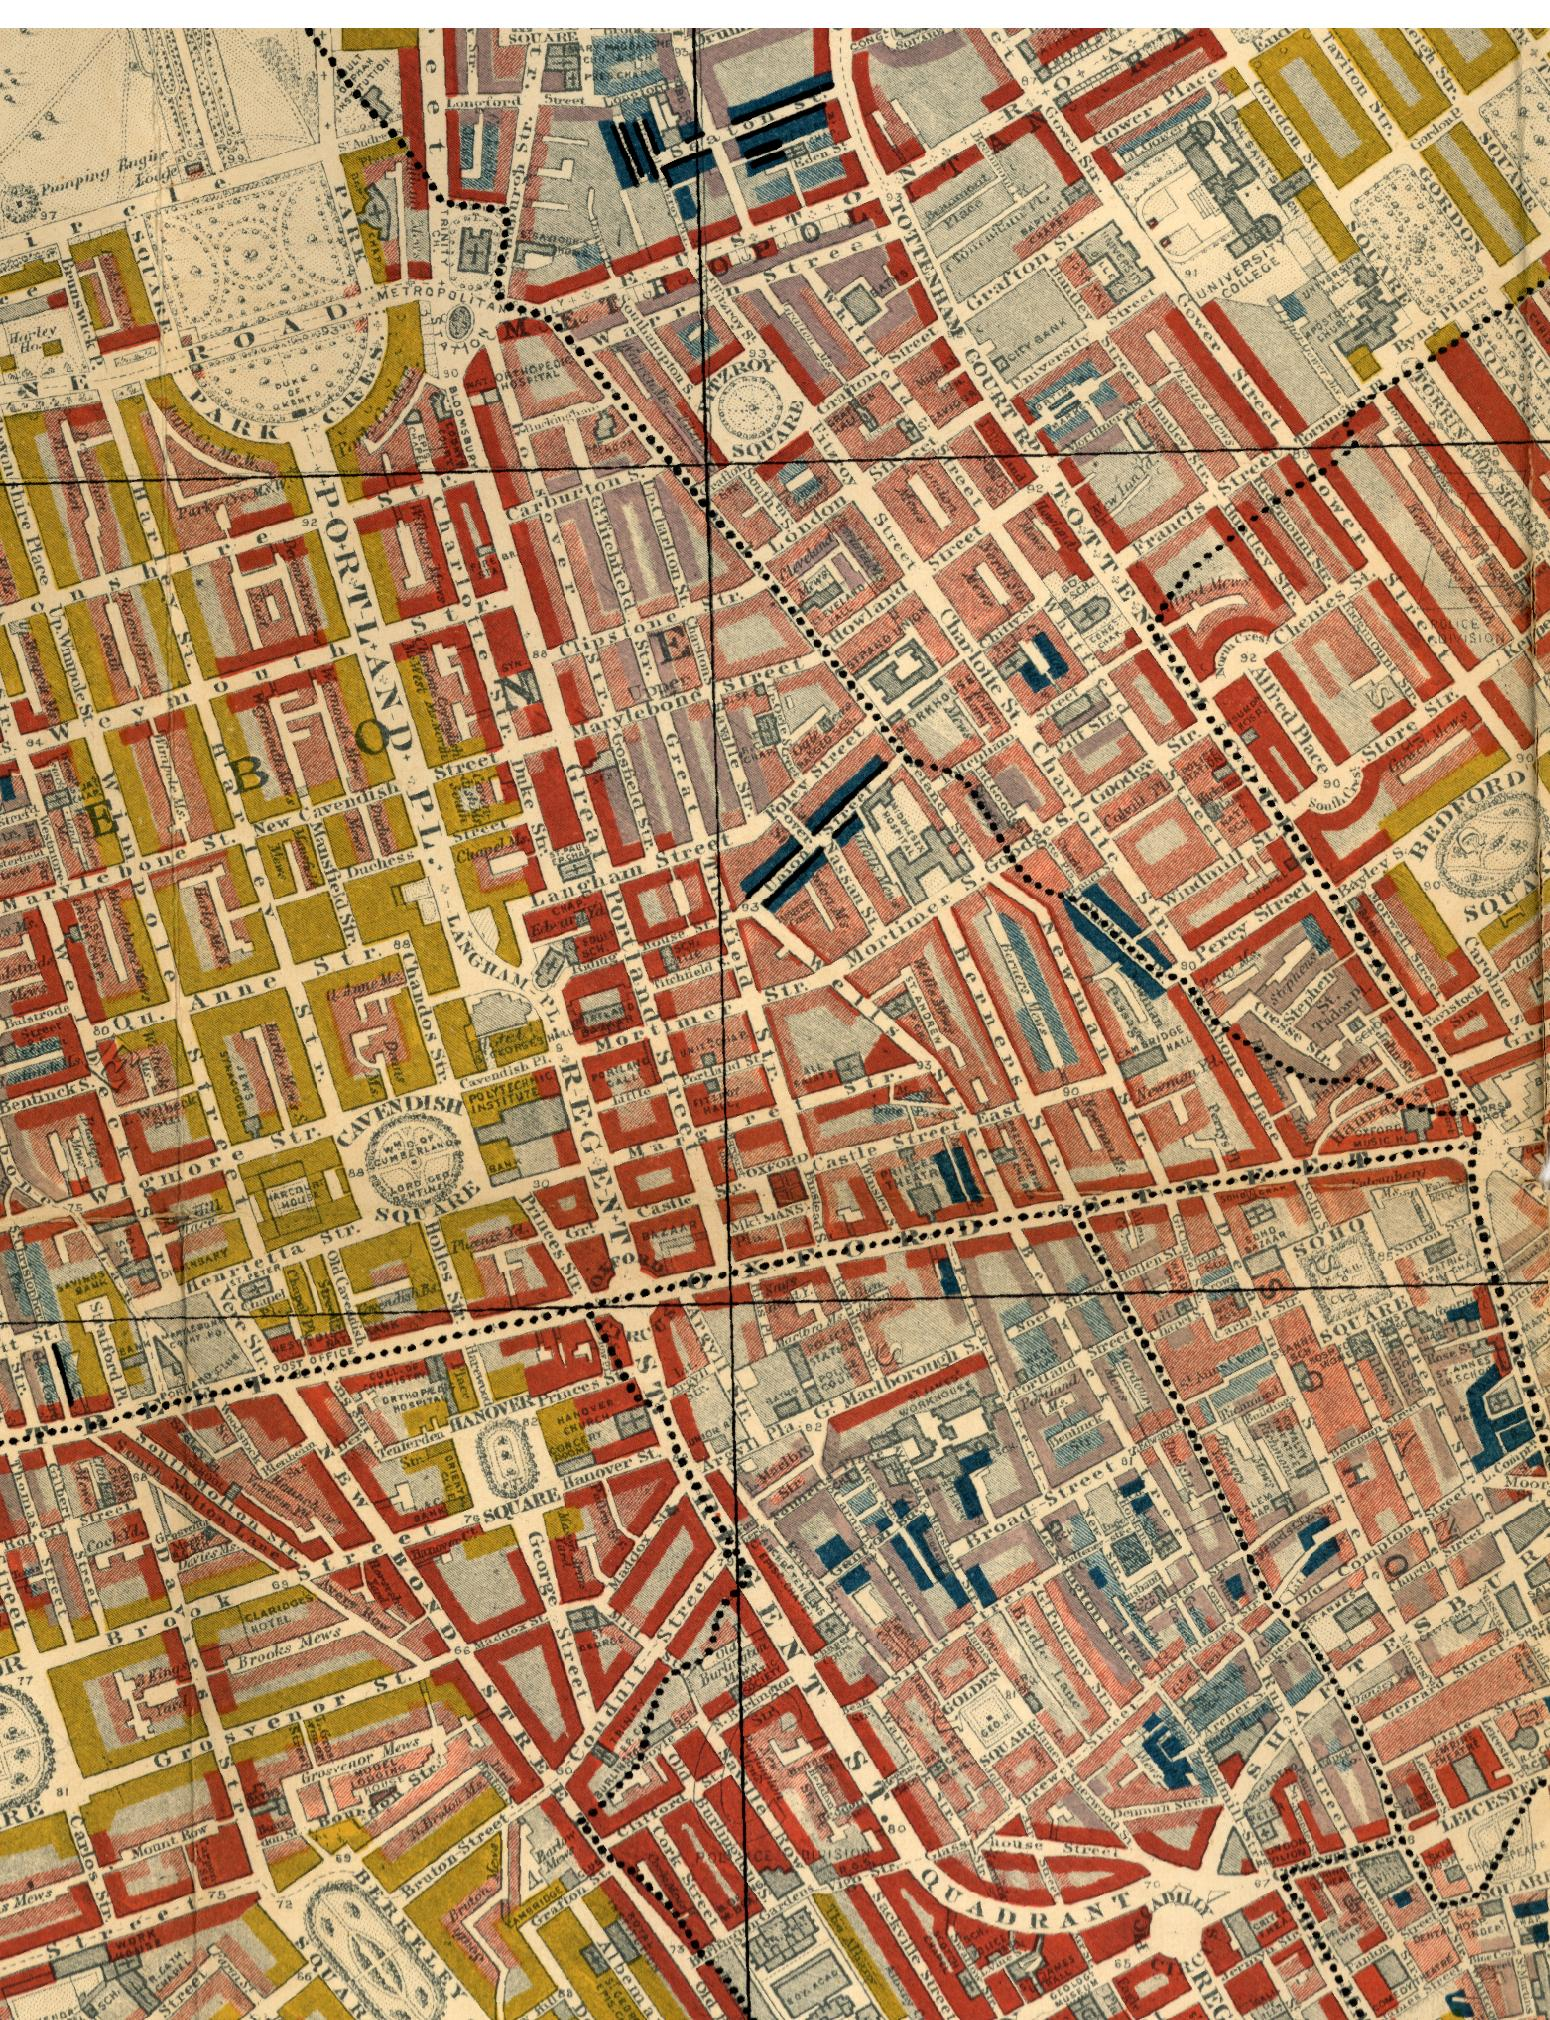 Extract of Charles Booth Poverty map